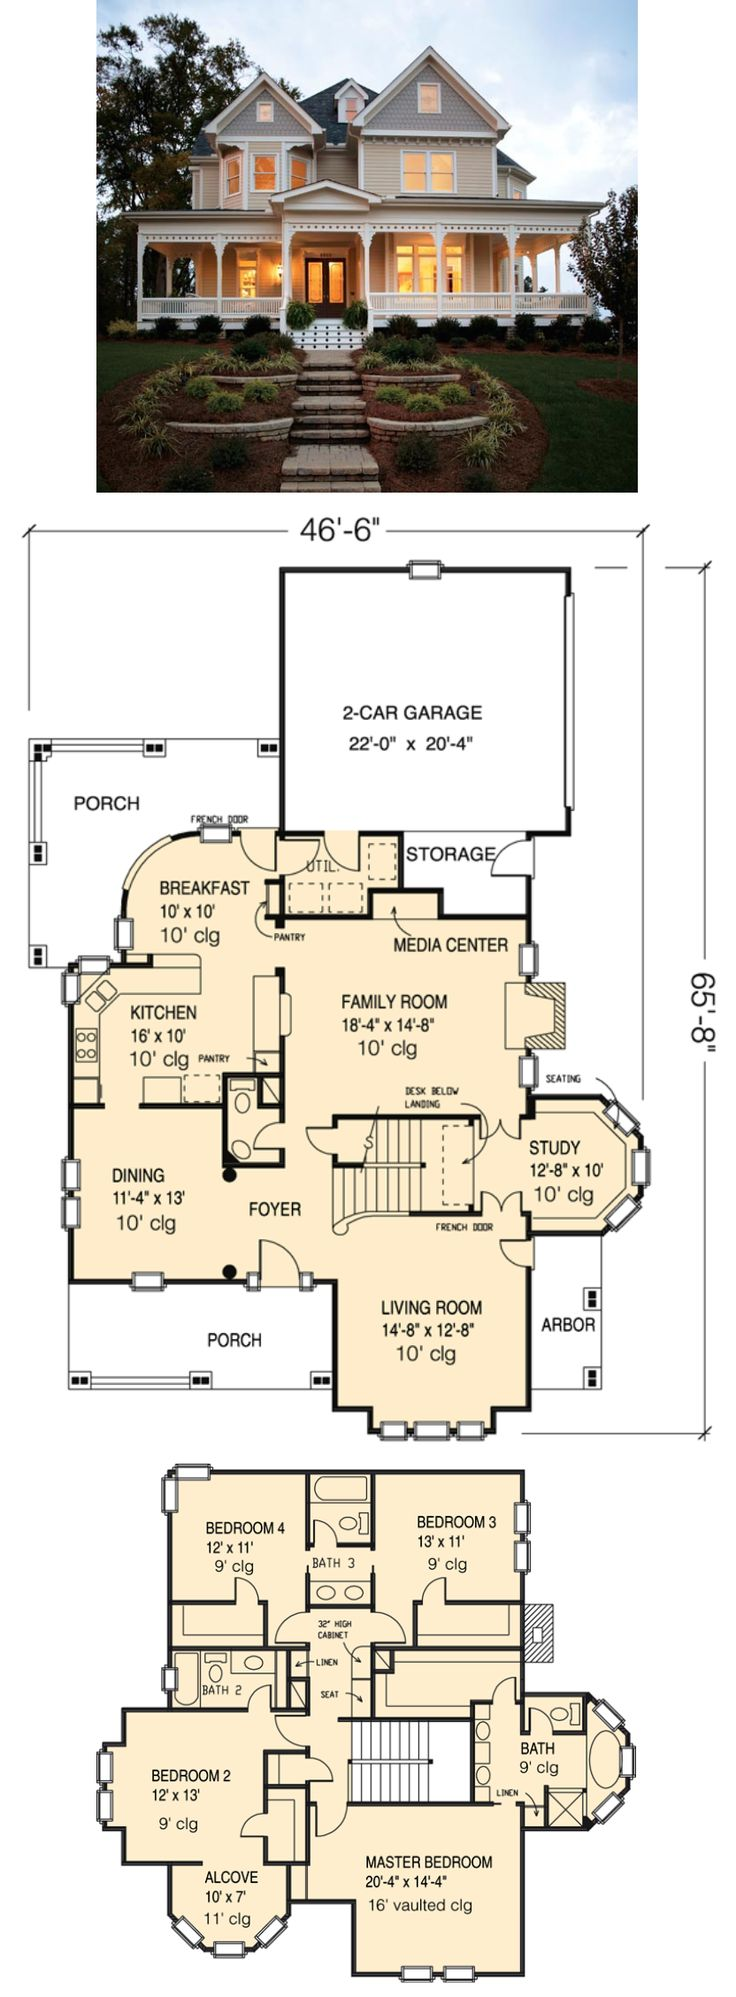 Enjoyable 17 Best Ideas About House Plans On Pinterest Country House Plans Largest Home Design Picture Inspirations Pitcheantrous